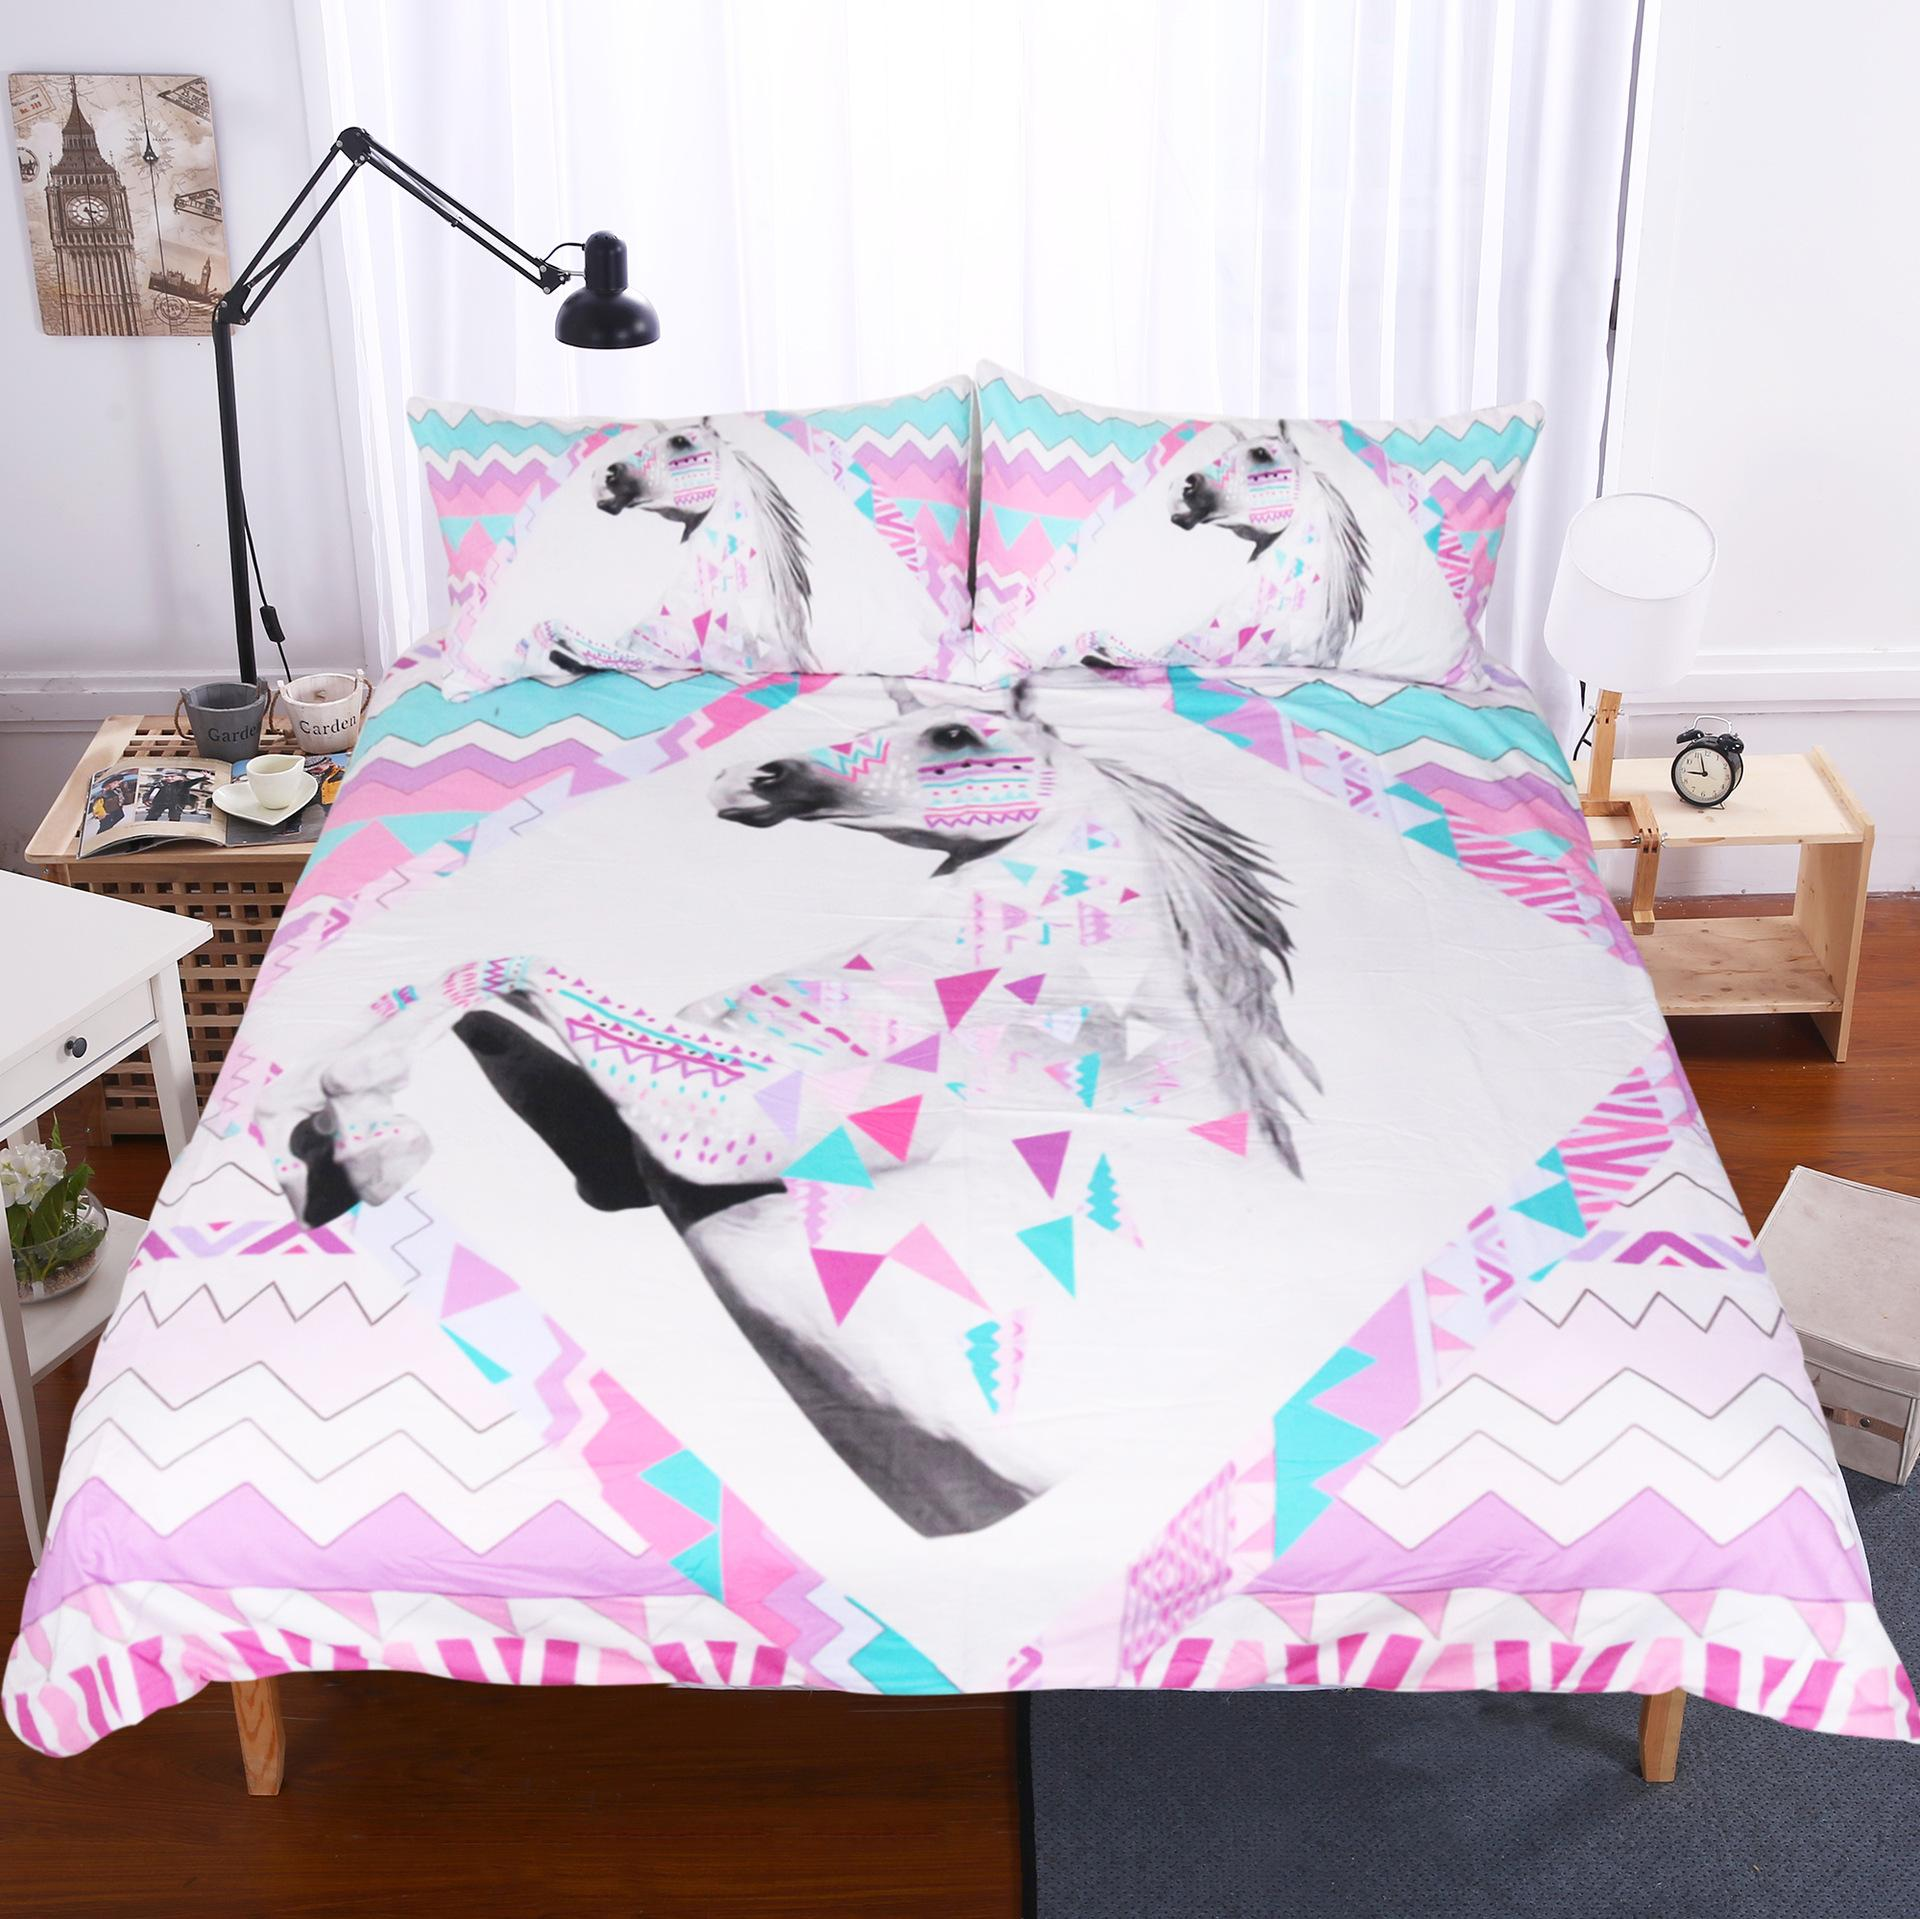 Charming 3d Unicorn Bedding Set Queen Size Watercolor Print Bed Set Kids Girl Flower  Duvet Cover Colored Dreamlike Bedlinen Gold Bedding Queen Comforter From ...